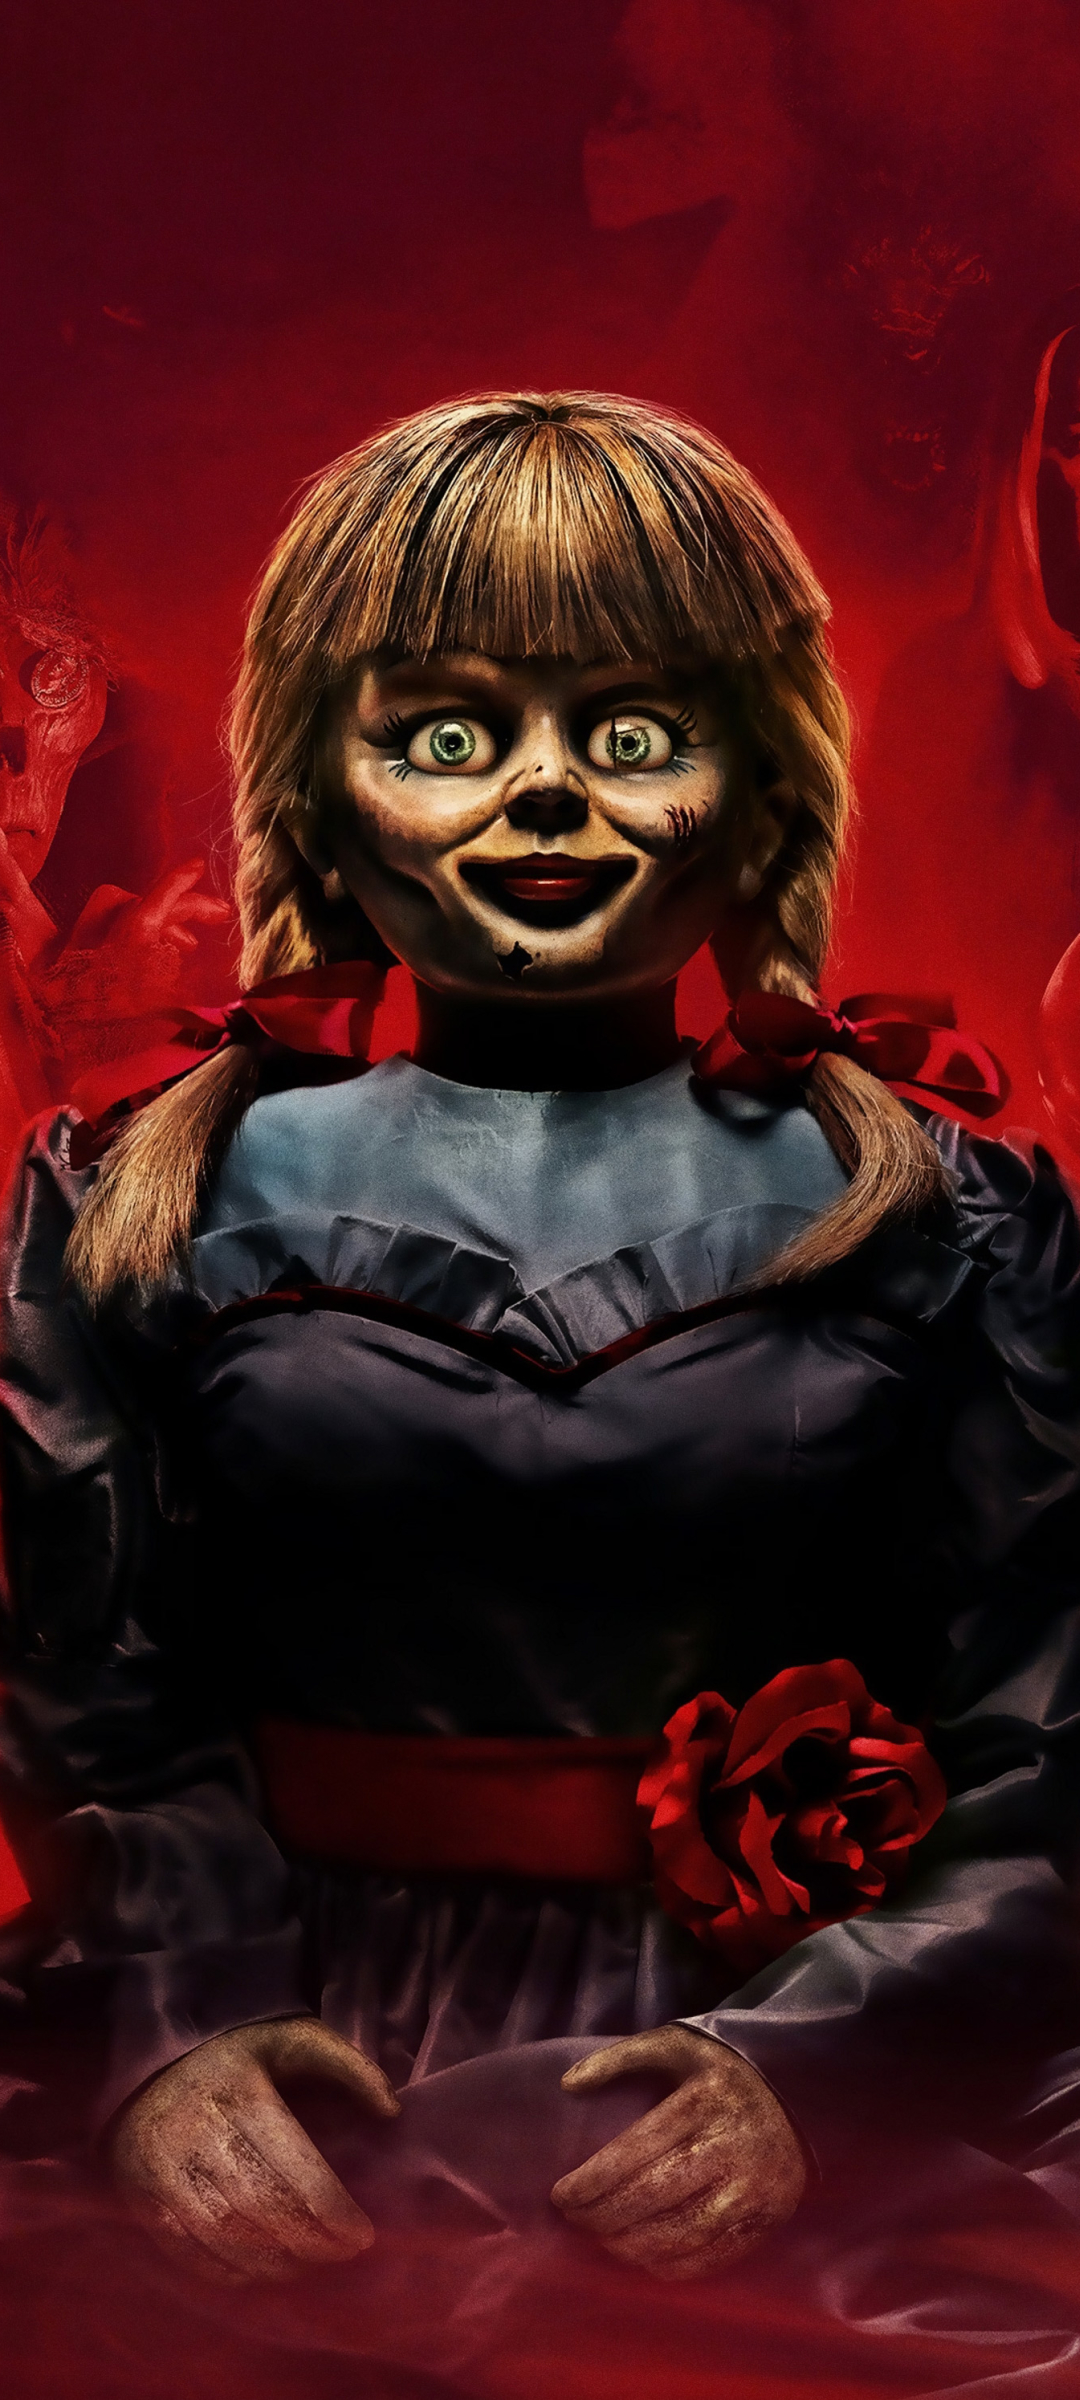 1080x2400 Annabelle Comes Home 1080x2400 Resolution ...